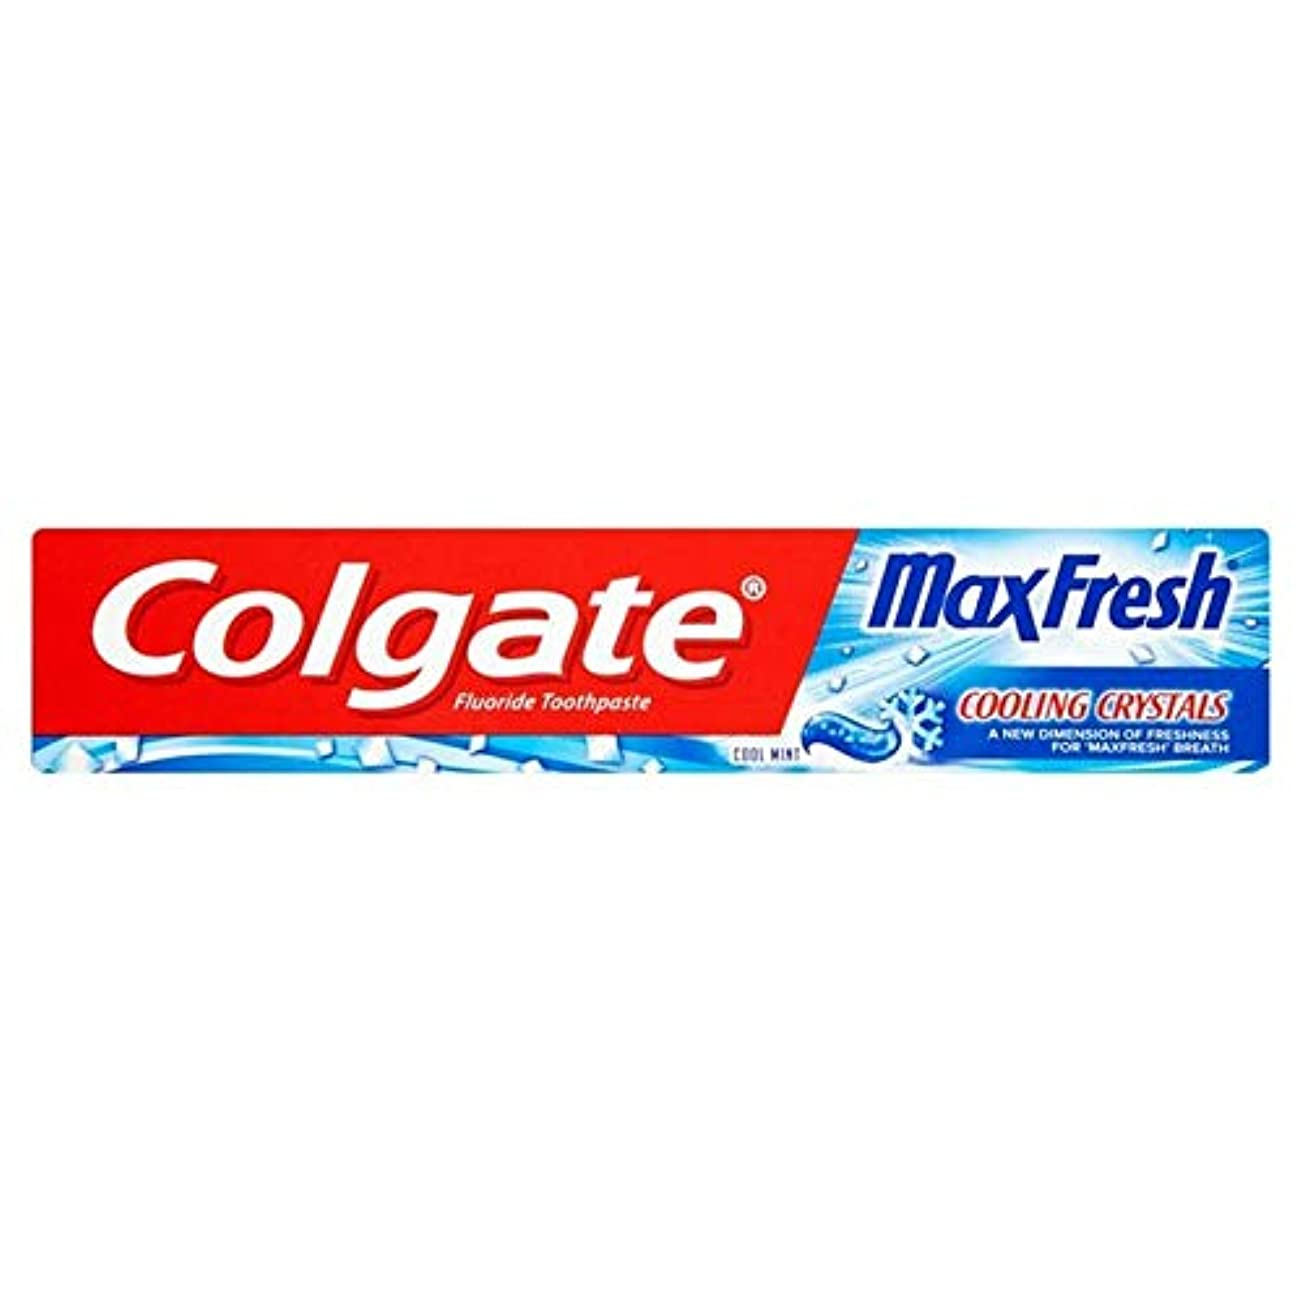 [Colgate ] 冷却結晶歯磨き粉75ミリリットル新鮮なコルゲートマックス - Colgate Max Fresh with Cooling Crystals Toothpaste 75ml [並行輸入品]